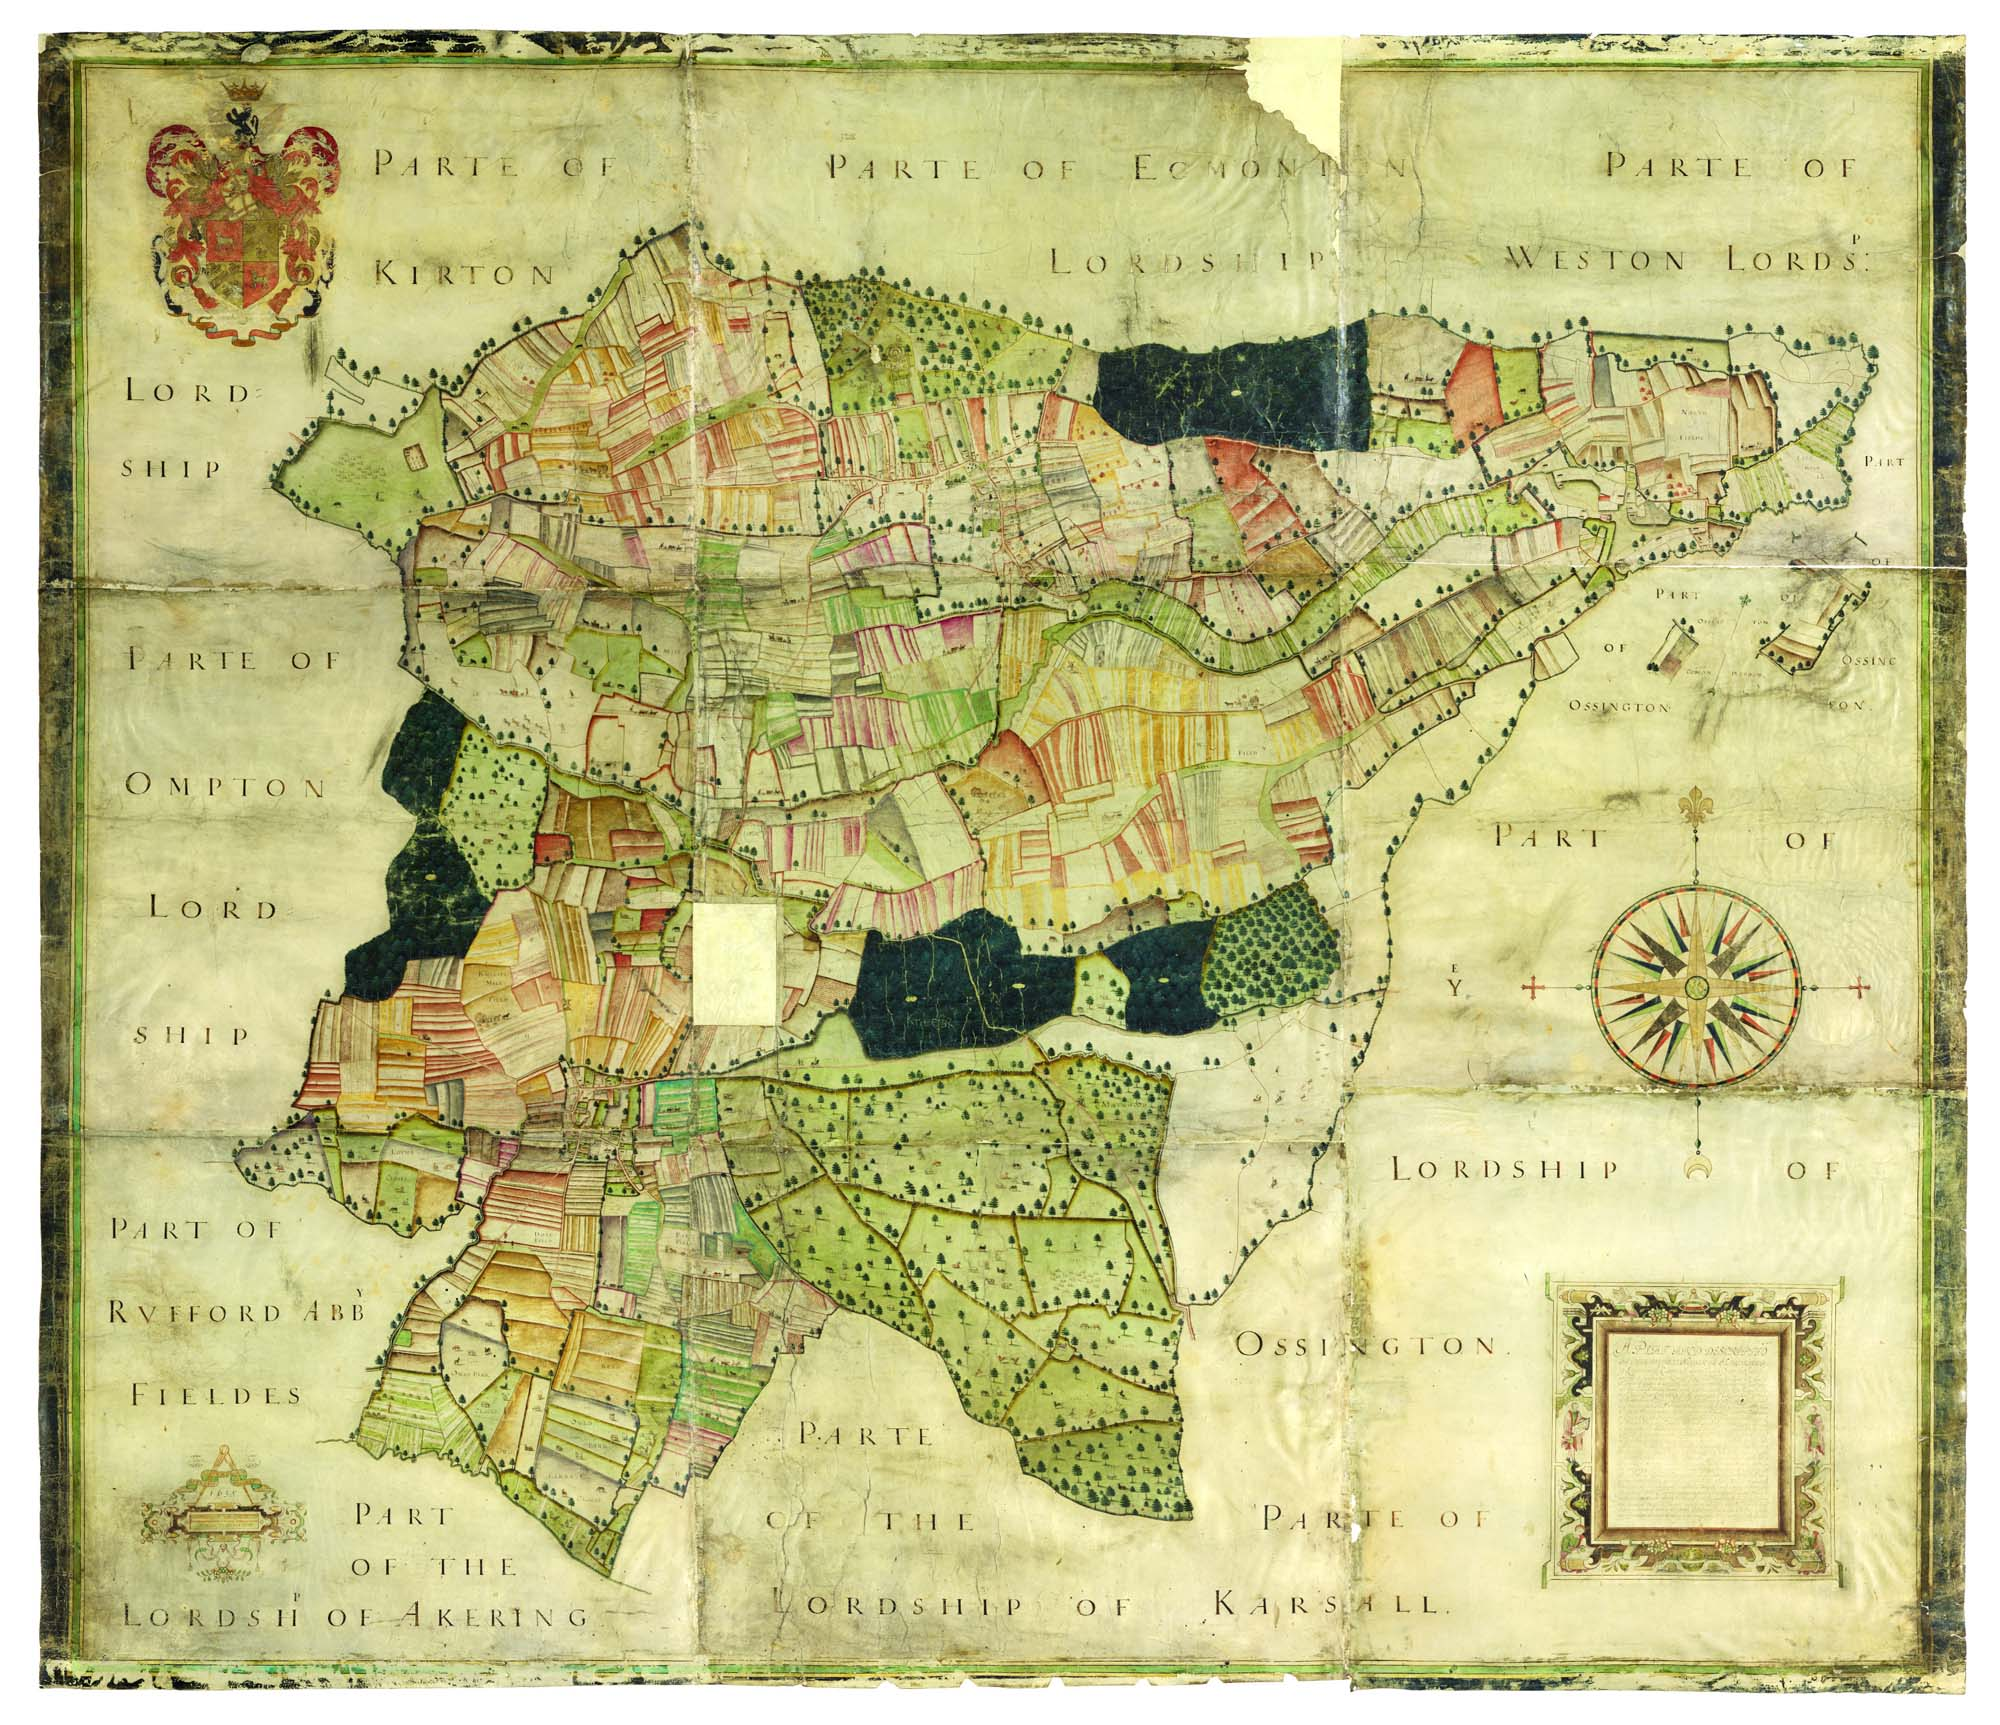 photo of an old map showing a county with filed boundaries, medieval figures and other quaint details